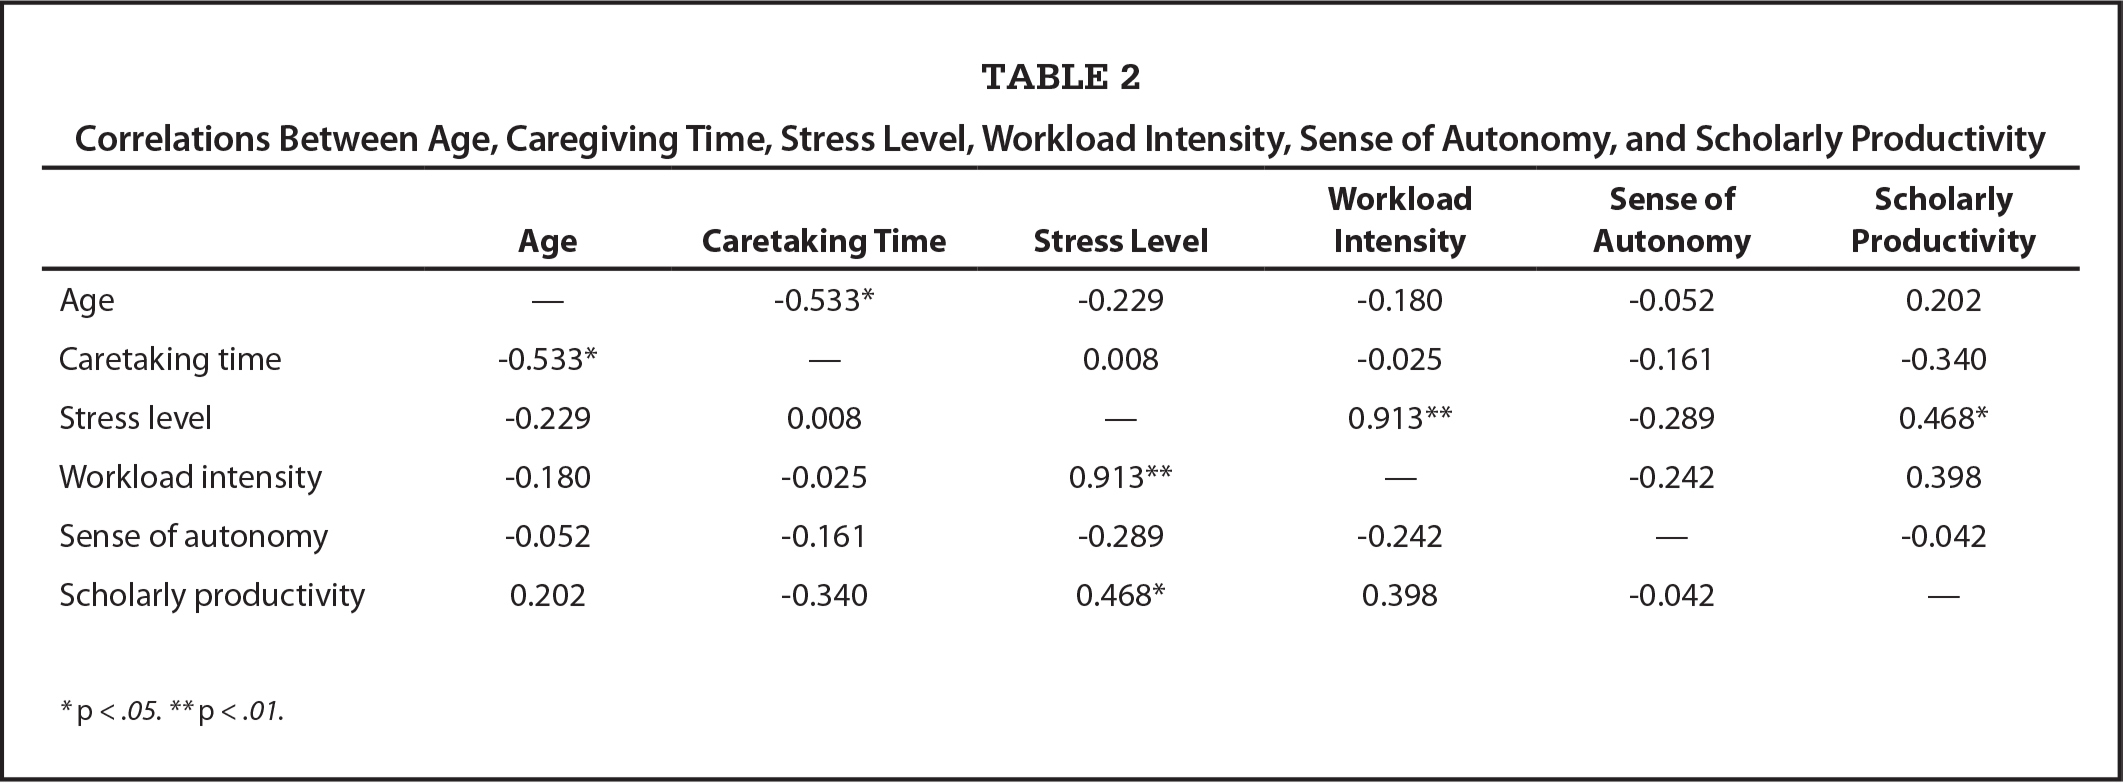 Correlations Between Age, Caregiving Time, Stress Level, Workload Intensity, Sense of Autonomy, and Scholarly Productivity